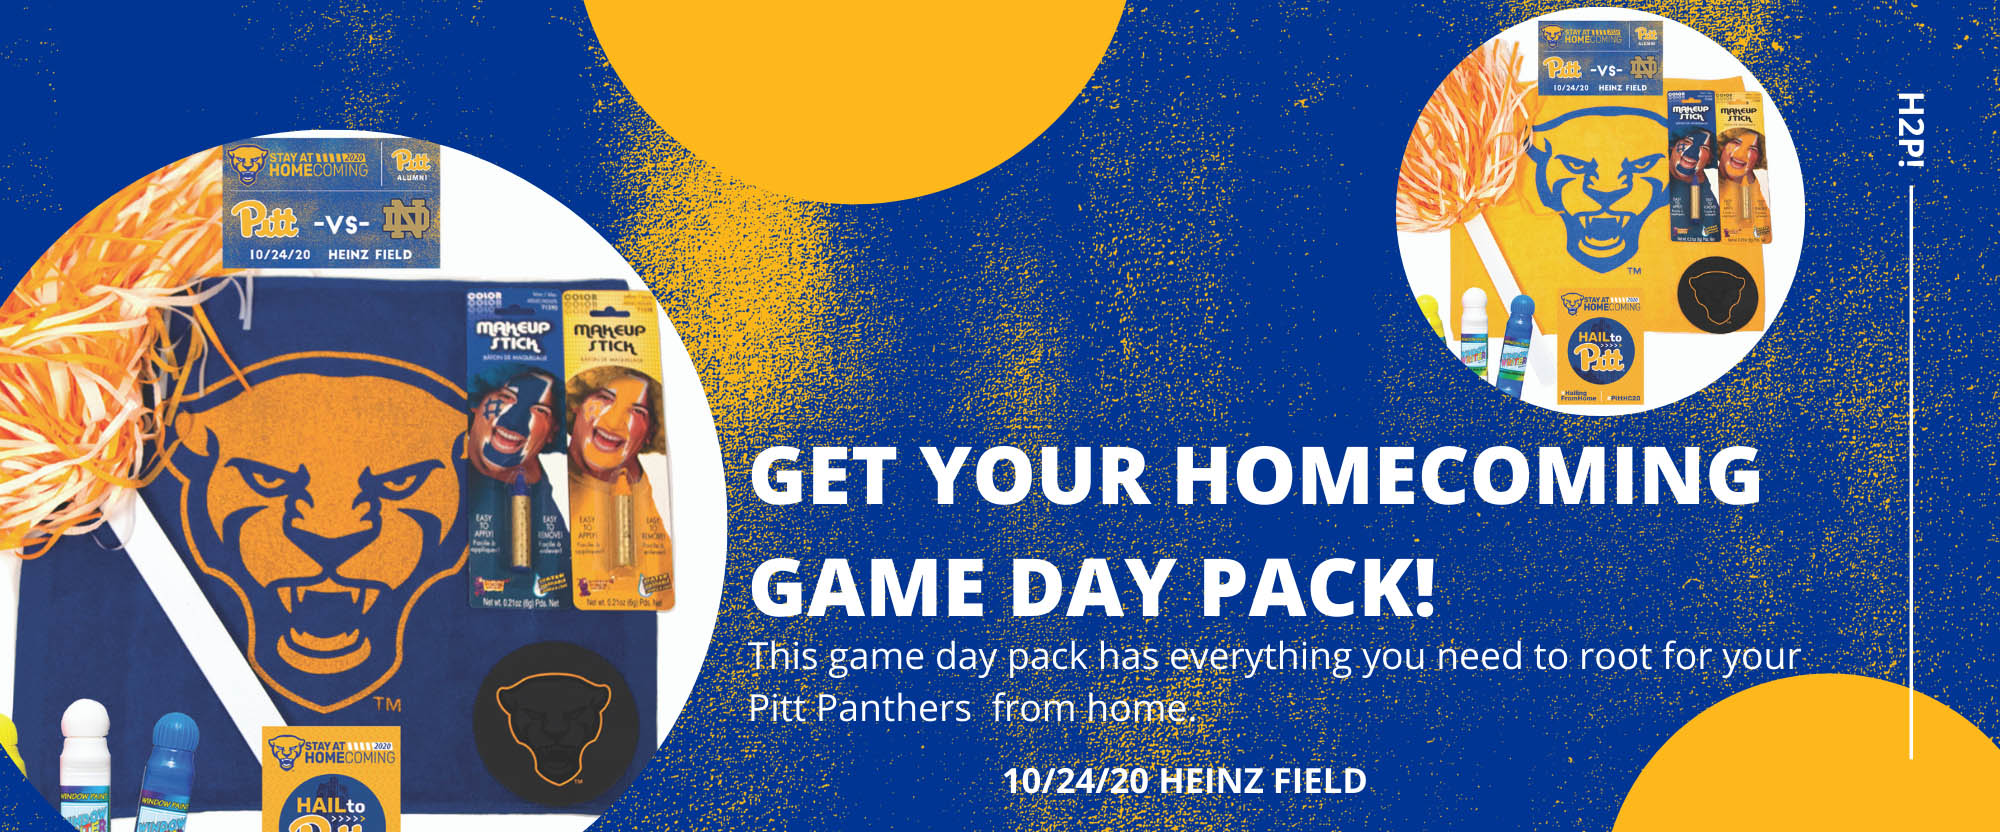 hail to pitt with gameday gear